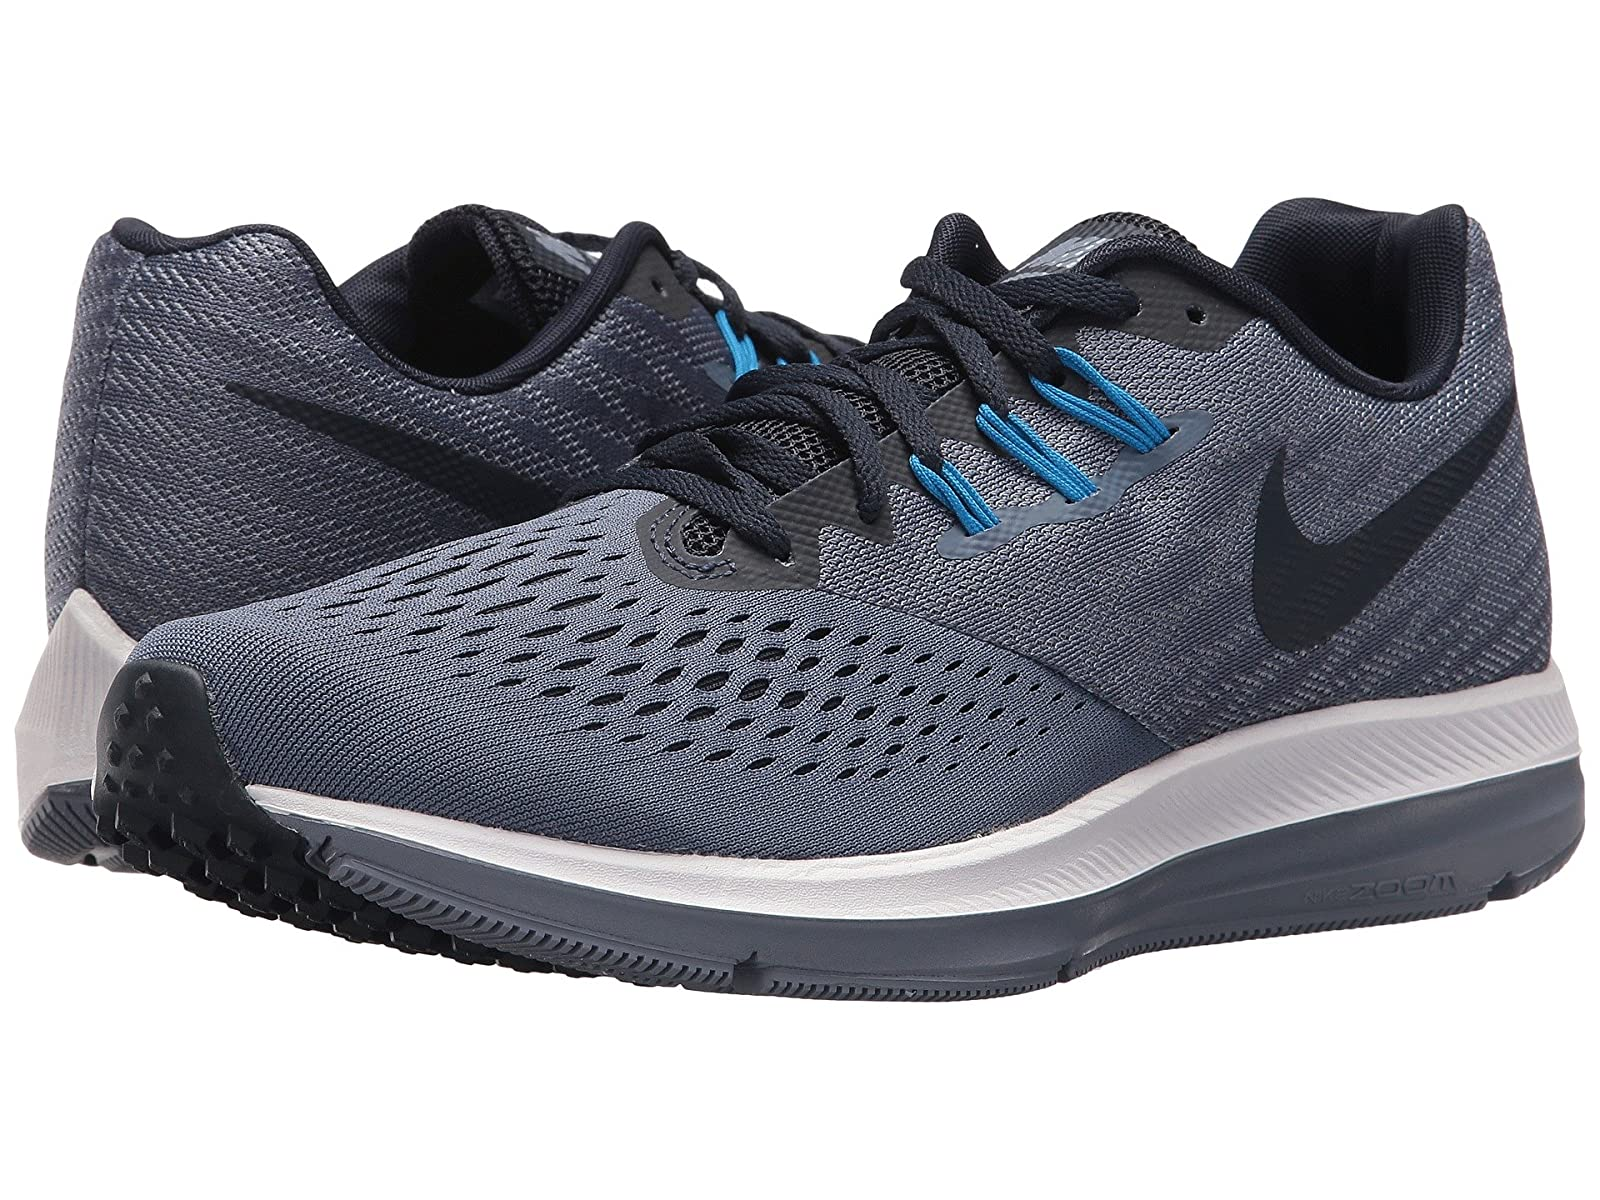 Nike Zoom Winflo 4Cheap and distinctive eye-catching shoes